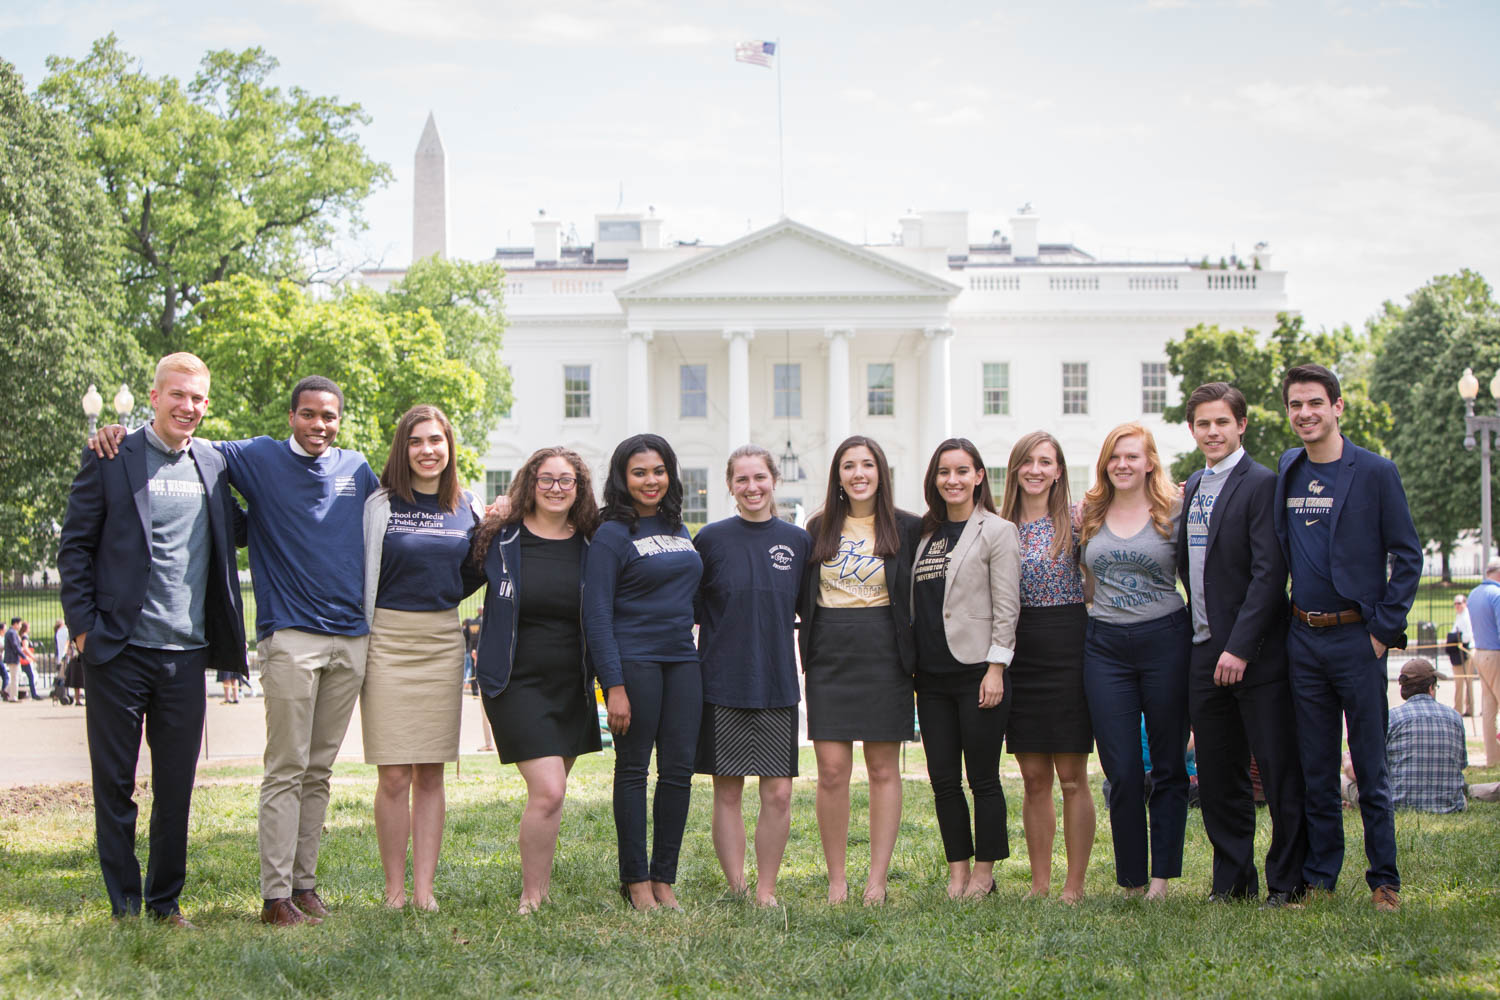 Weite Hose Sommer Interning At The White House | Gw Today | The George